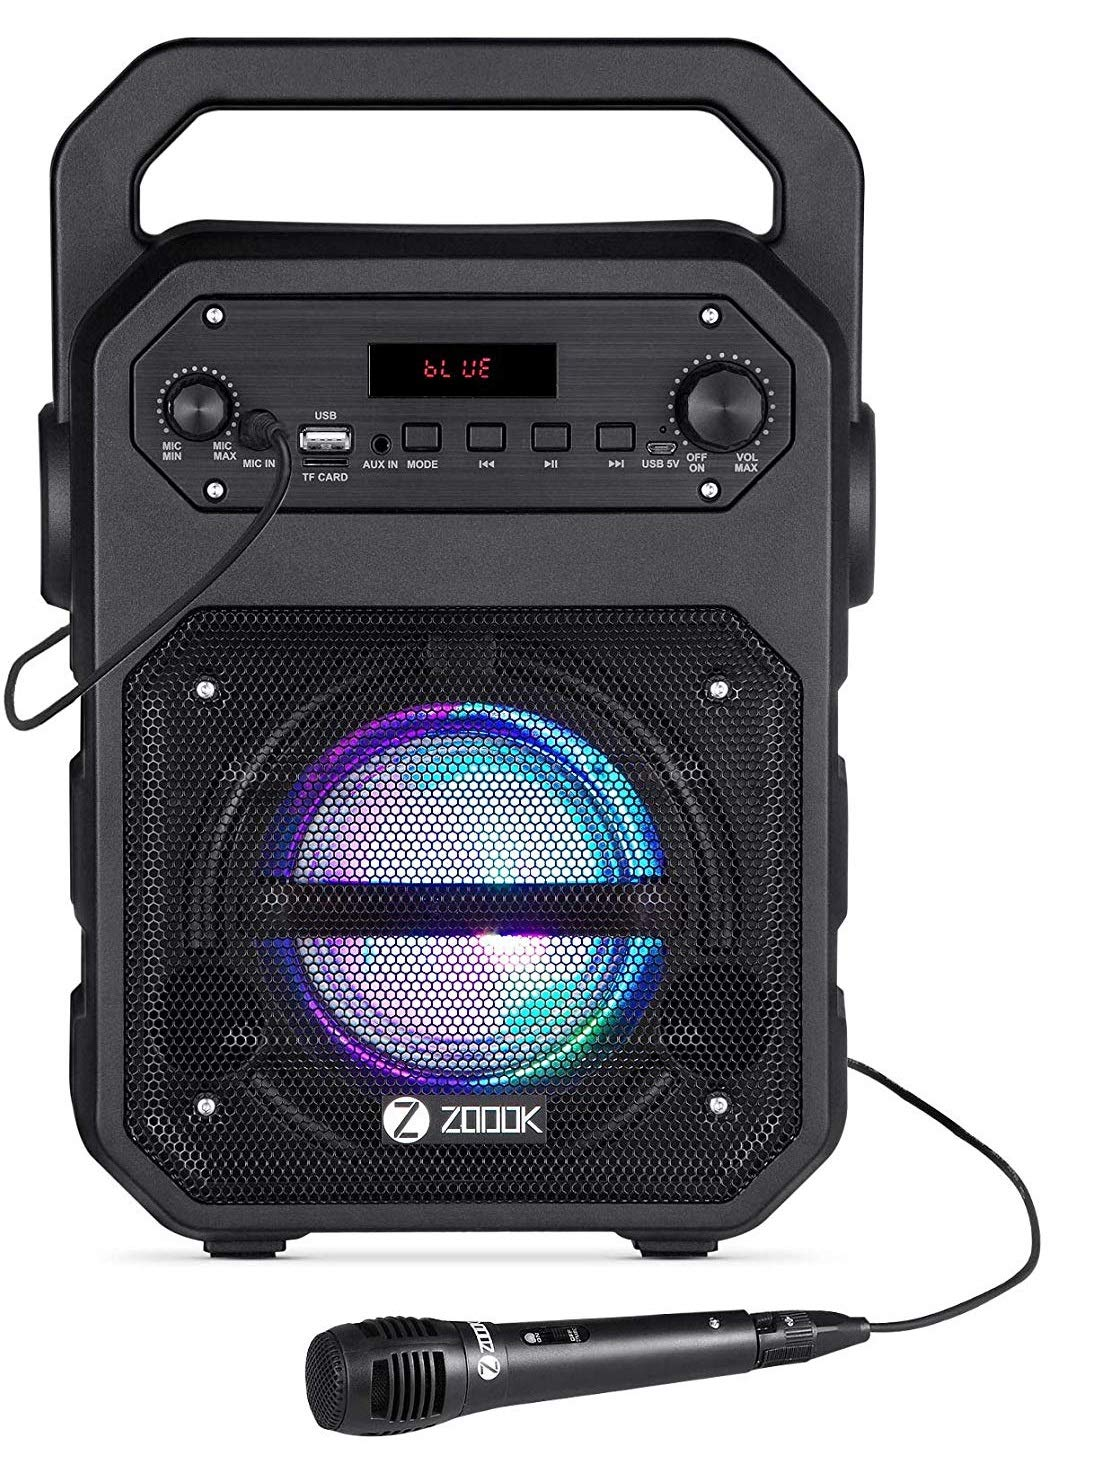 Zook Rocker Karaoke Player